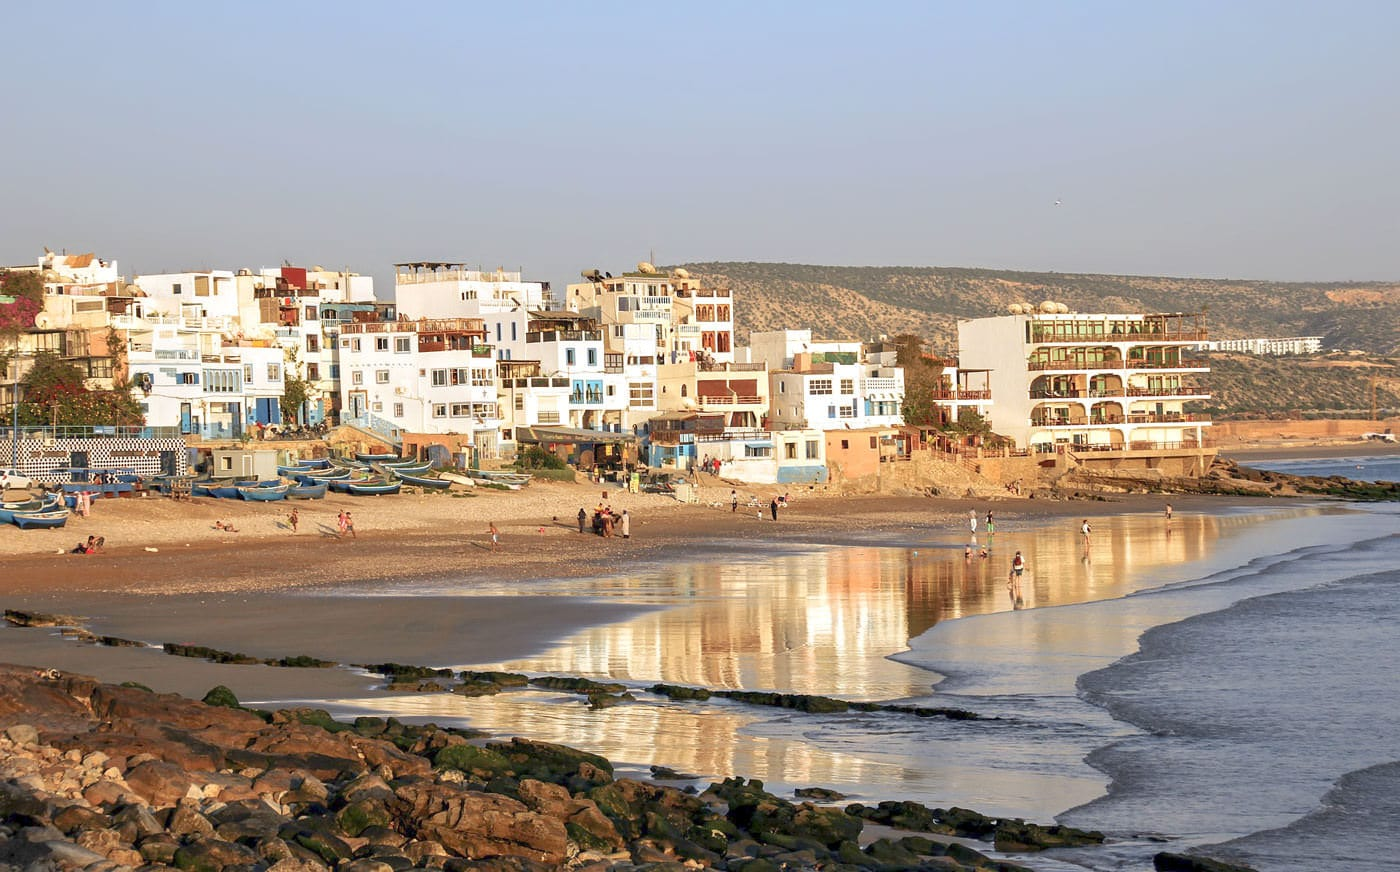 People on a beach in Taghazout, Morocco with buildings in the background.